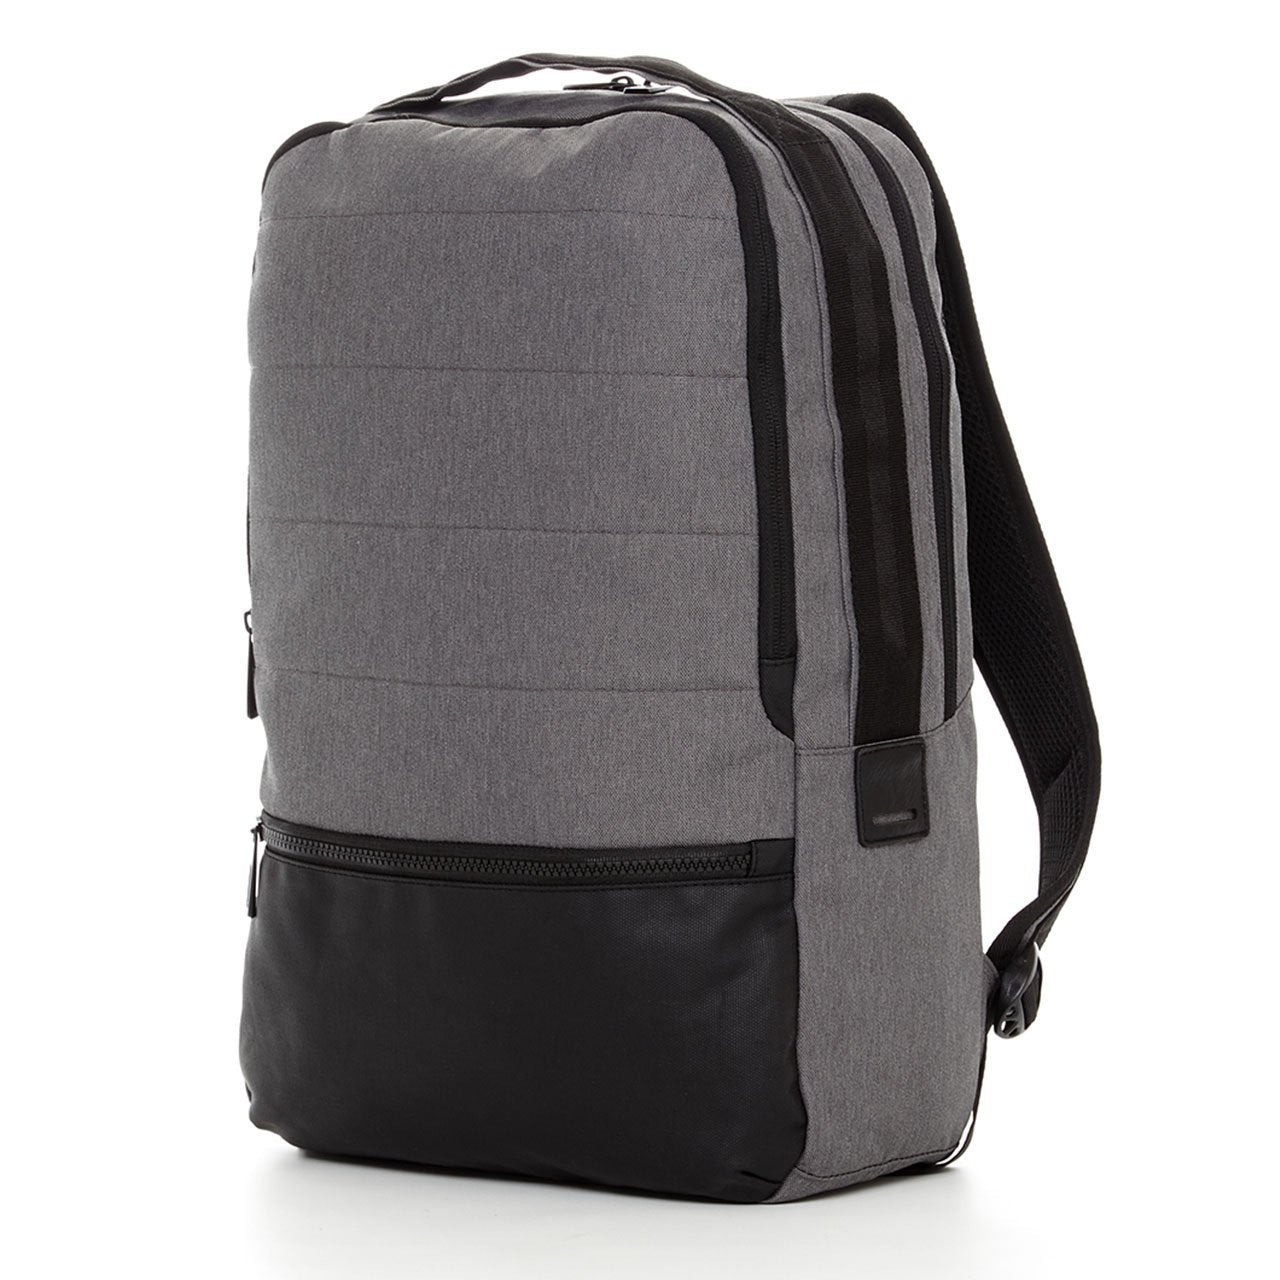 Backpack - Hank Backpack